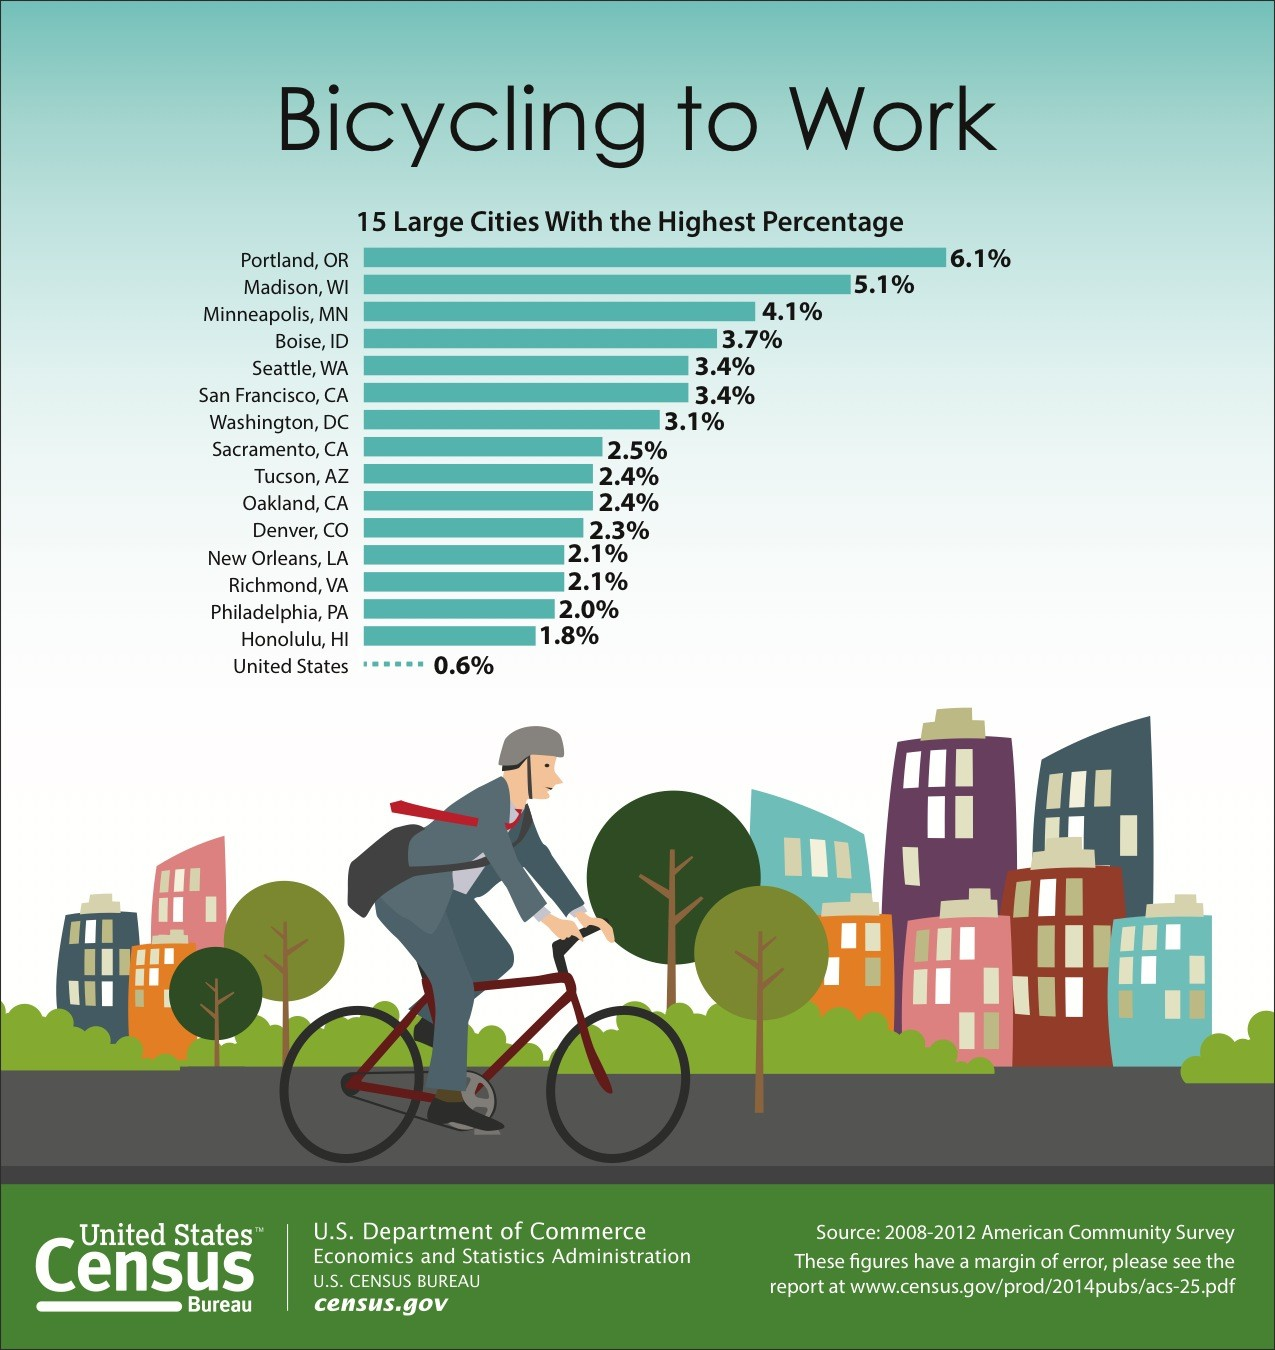 Biking to Work Increases 60 Percent in U.S., © 2008-2012 American Community Survey